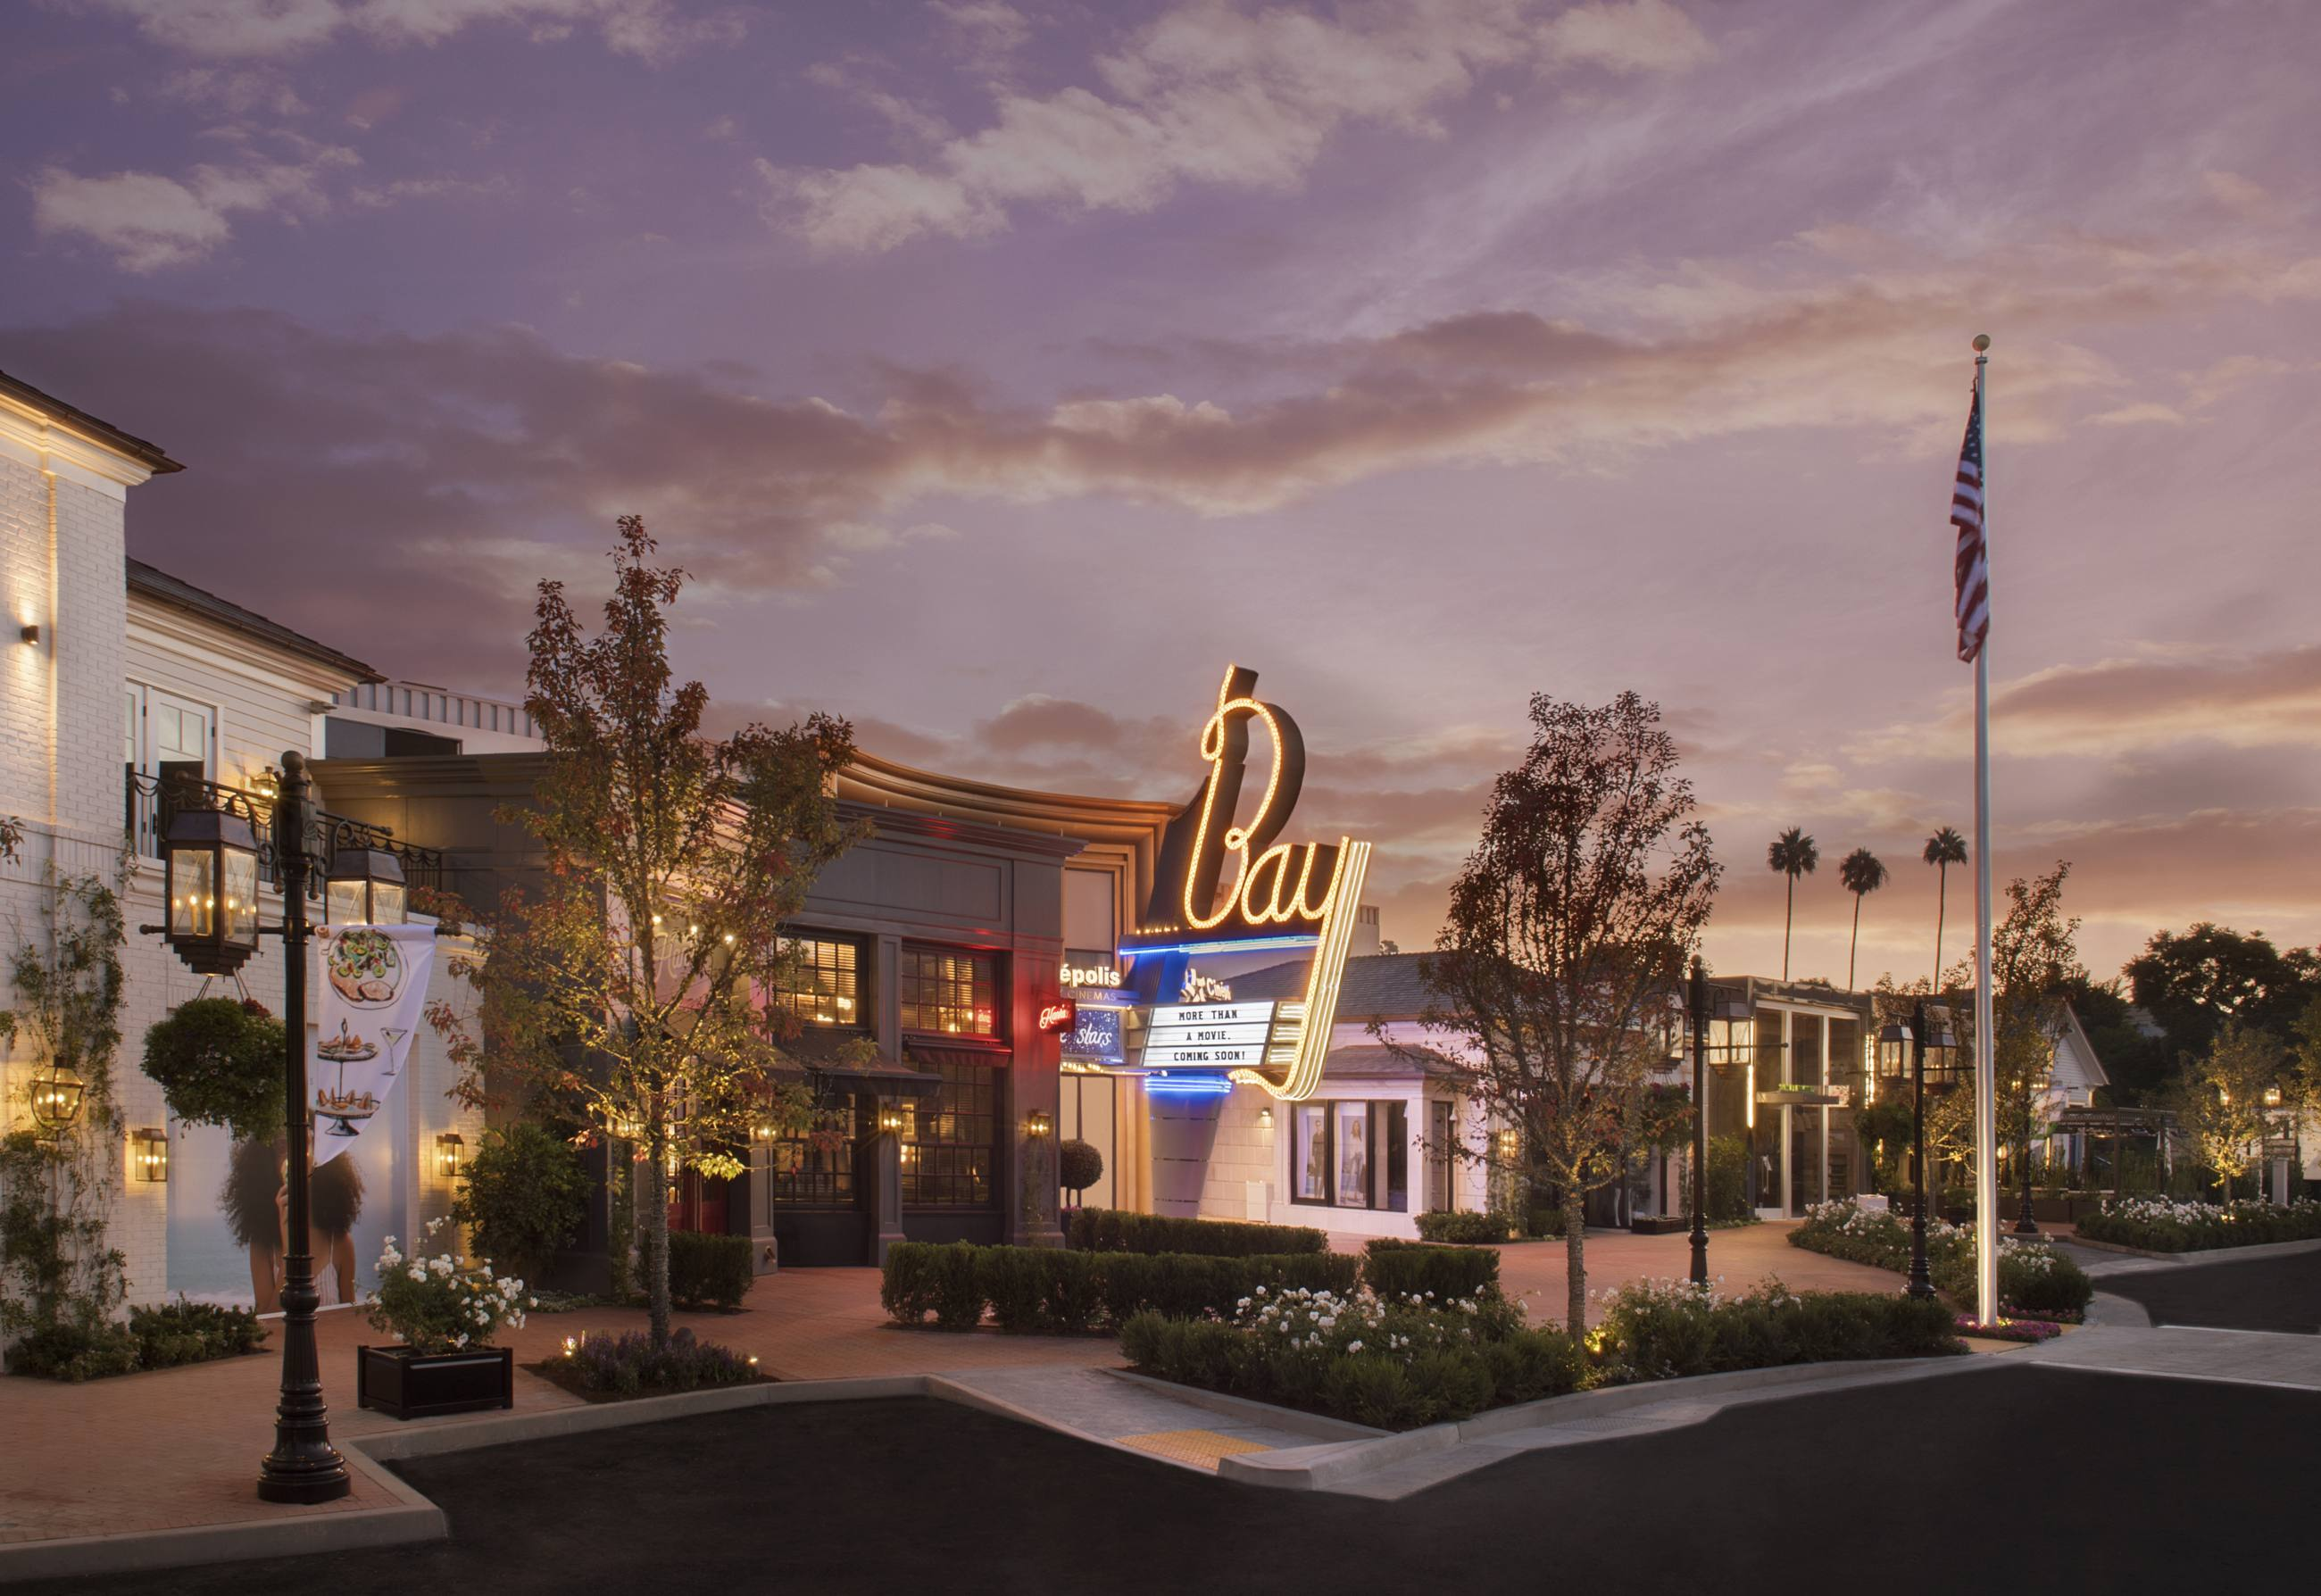 The Bay Theatre by Cinépolis Luxury Cinemas in Palisades Village